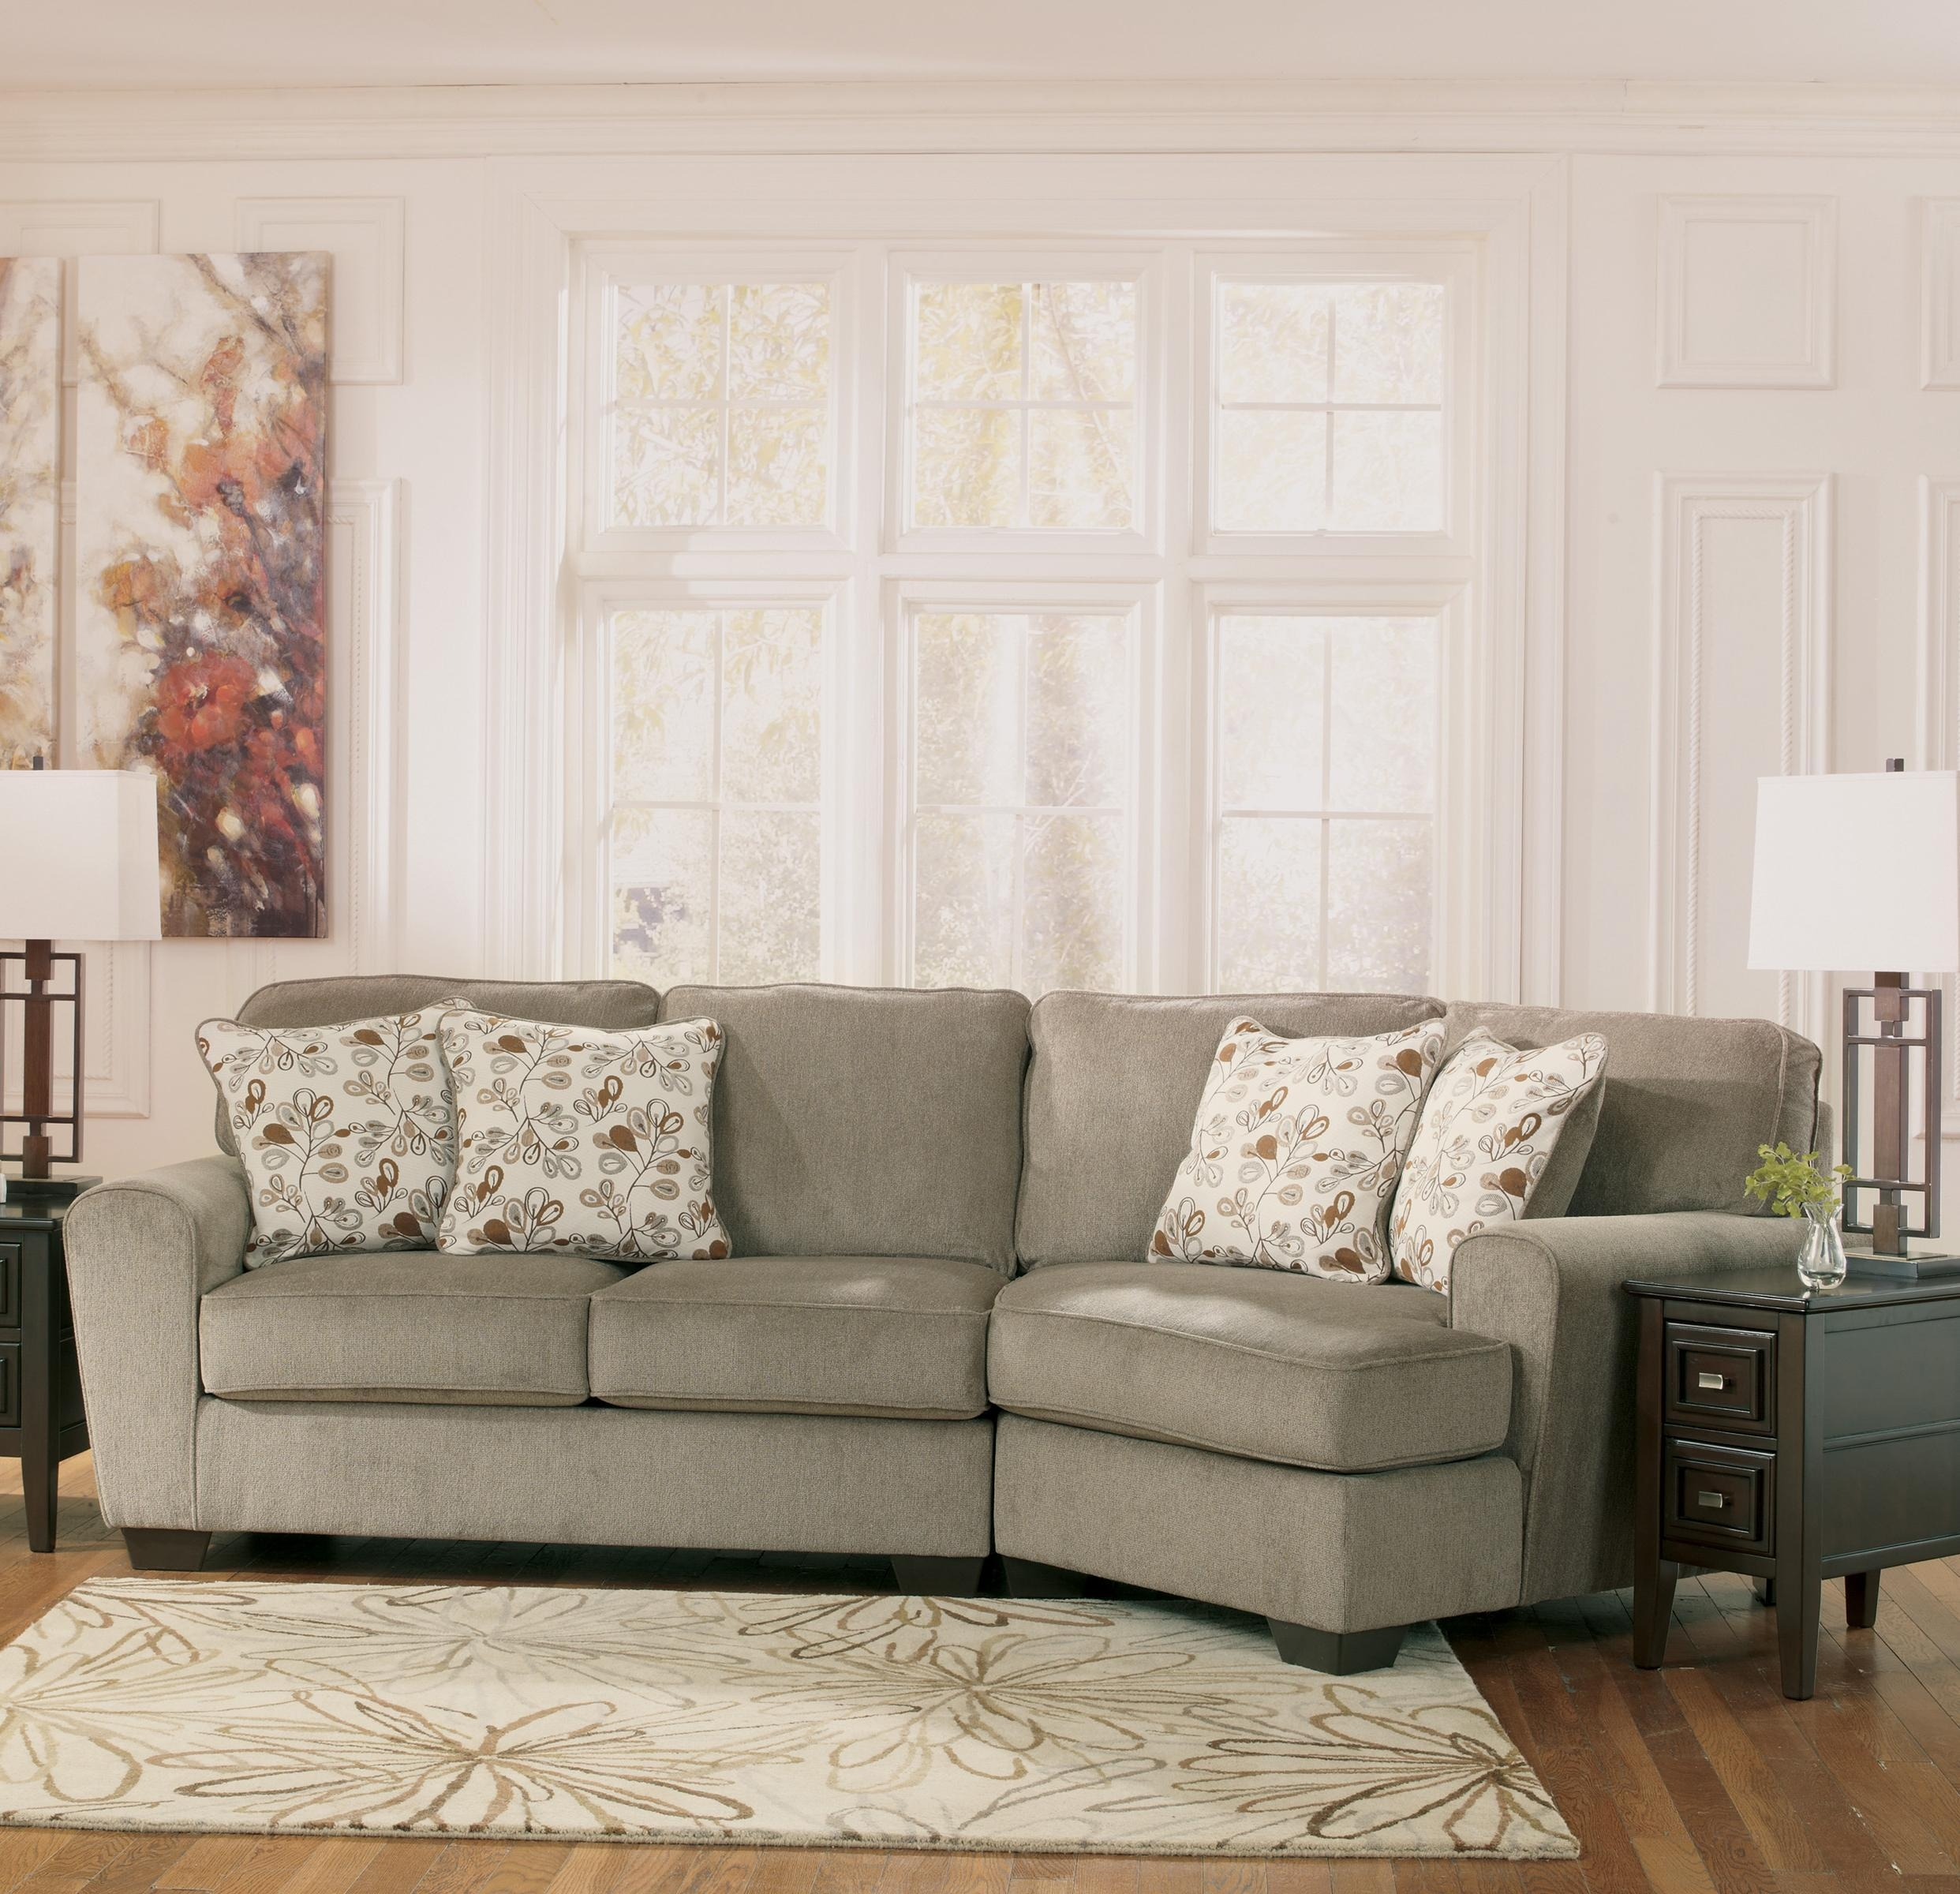 Ashley Furniture Patola Park – Patina 2 Piece Sectional With Right With Regard To Sectional Cuddler (Image 2 of 20)